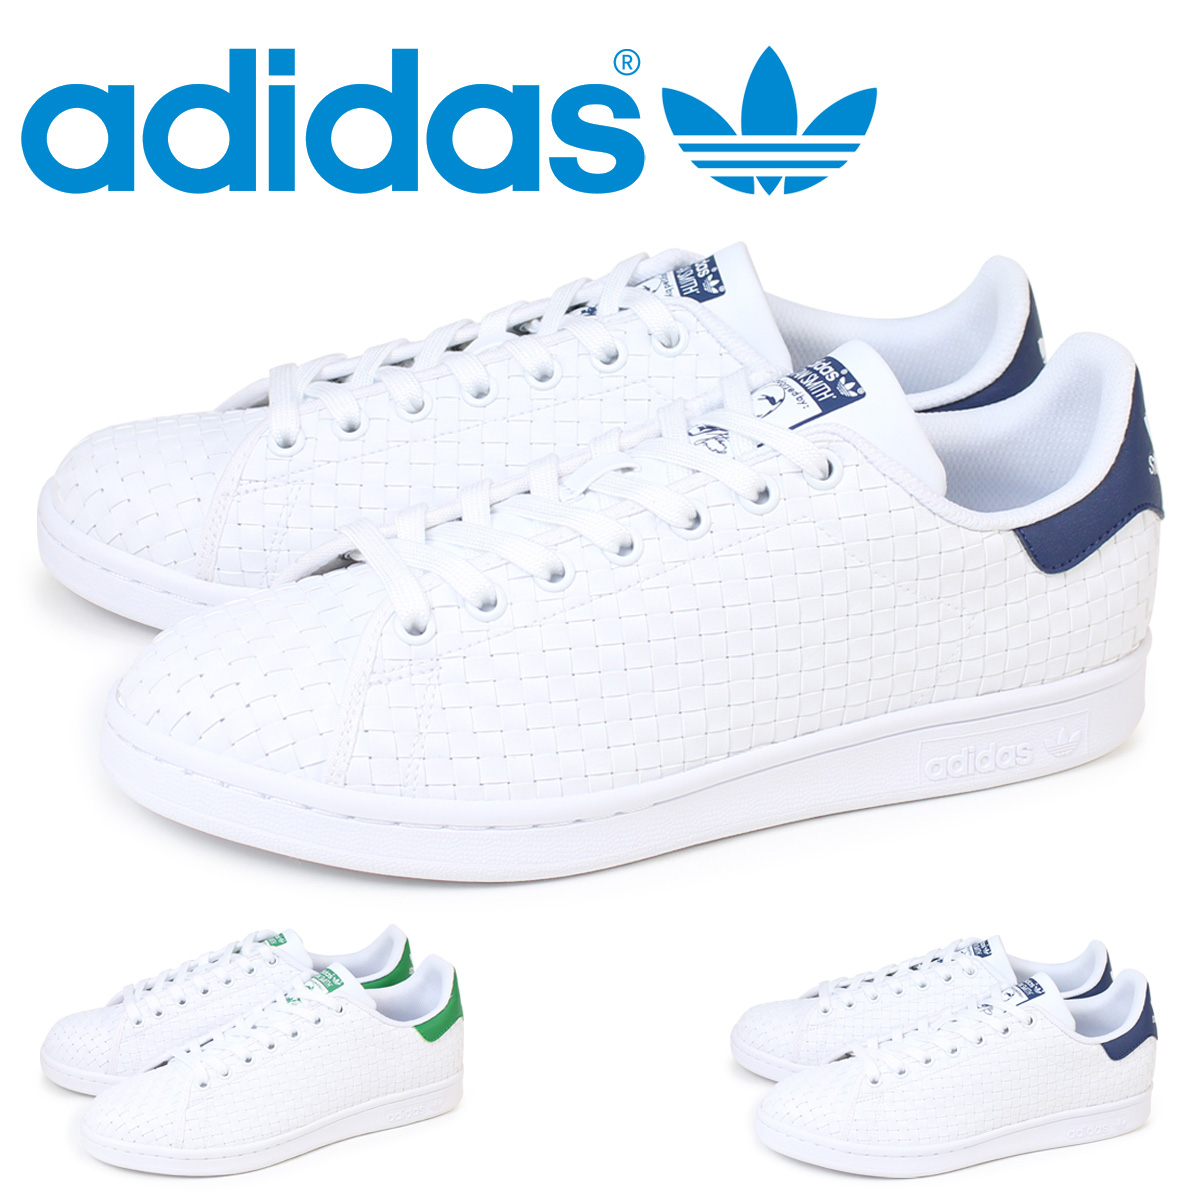 best service e64a3 6e494 adidas Stan Smith Adidas Originals sneakers STAN SMITH men BB0051 BB1468  shoes white white